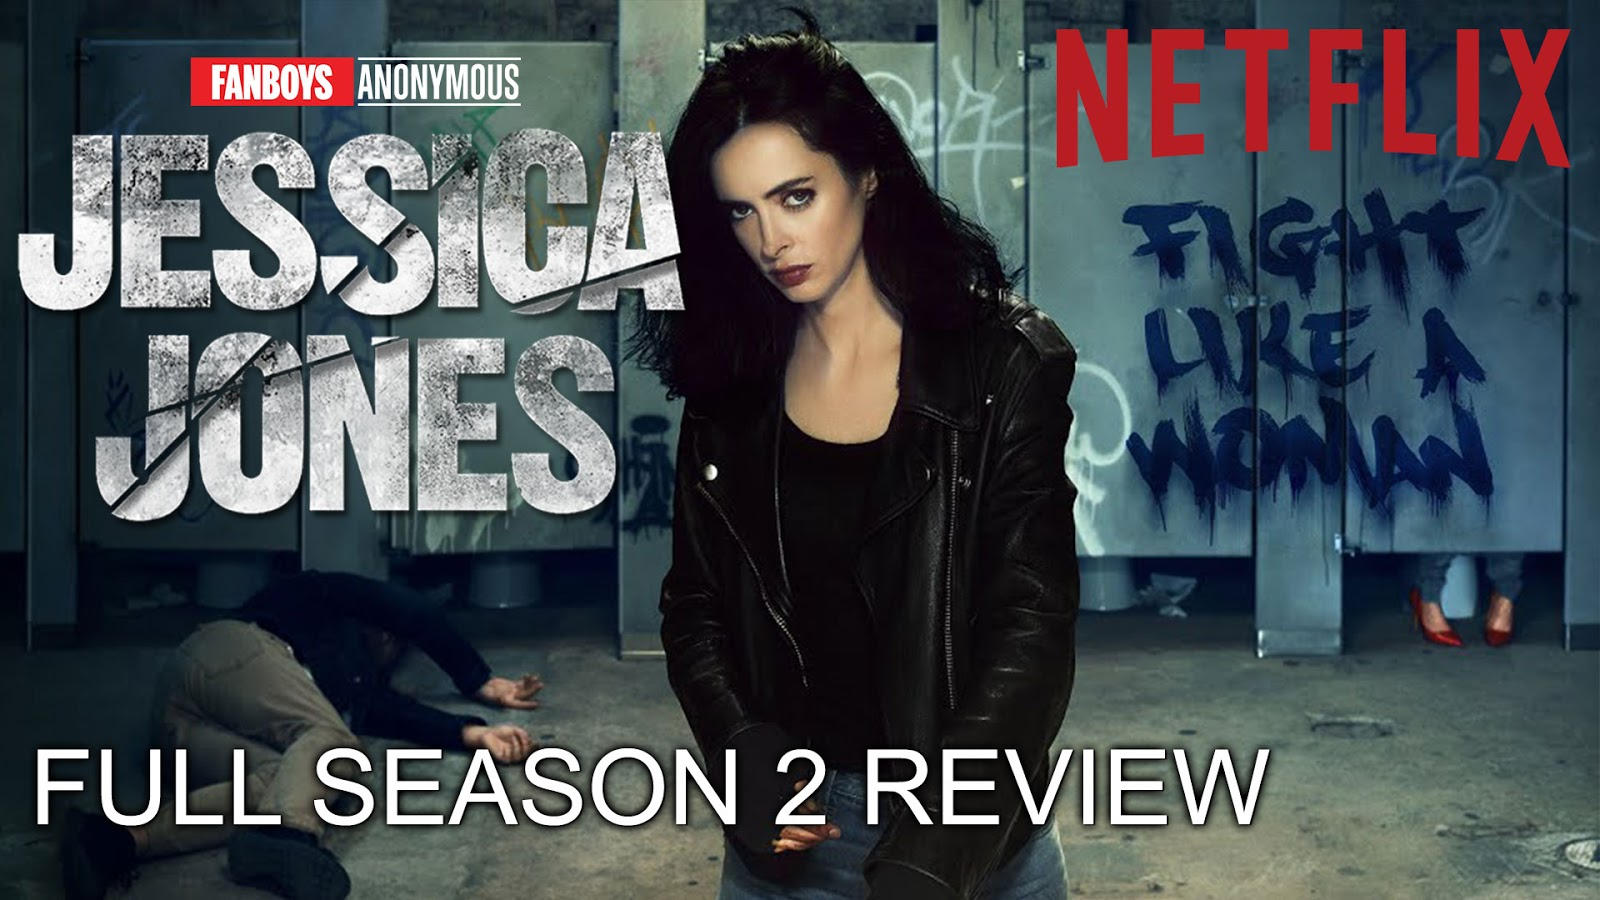 Netflix desktop Marvel's Jessica Jones wallpaper